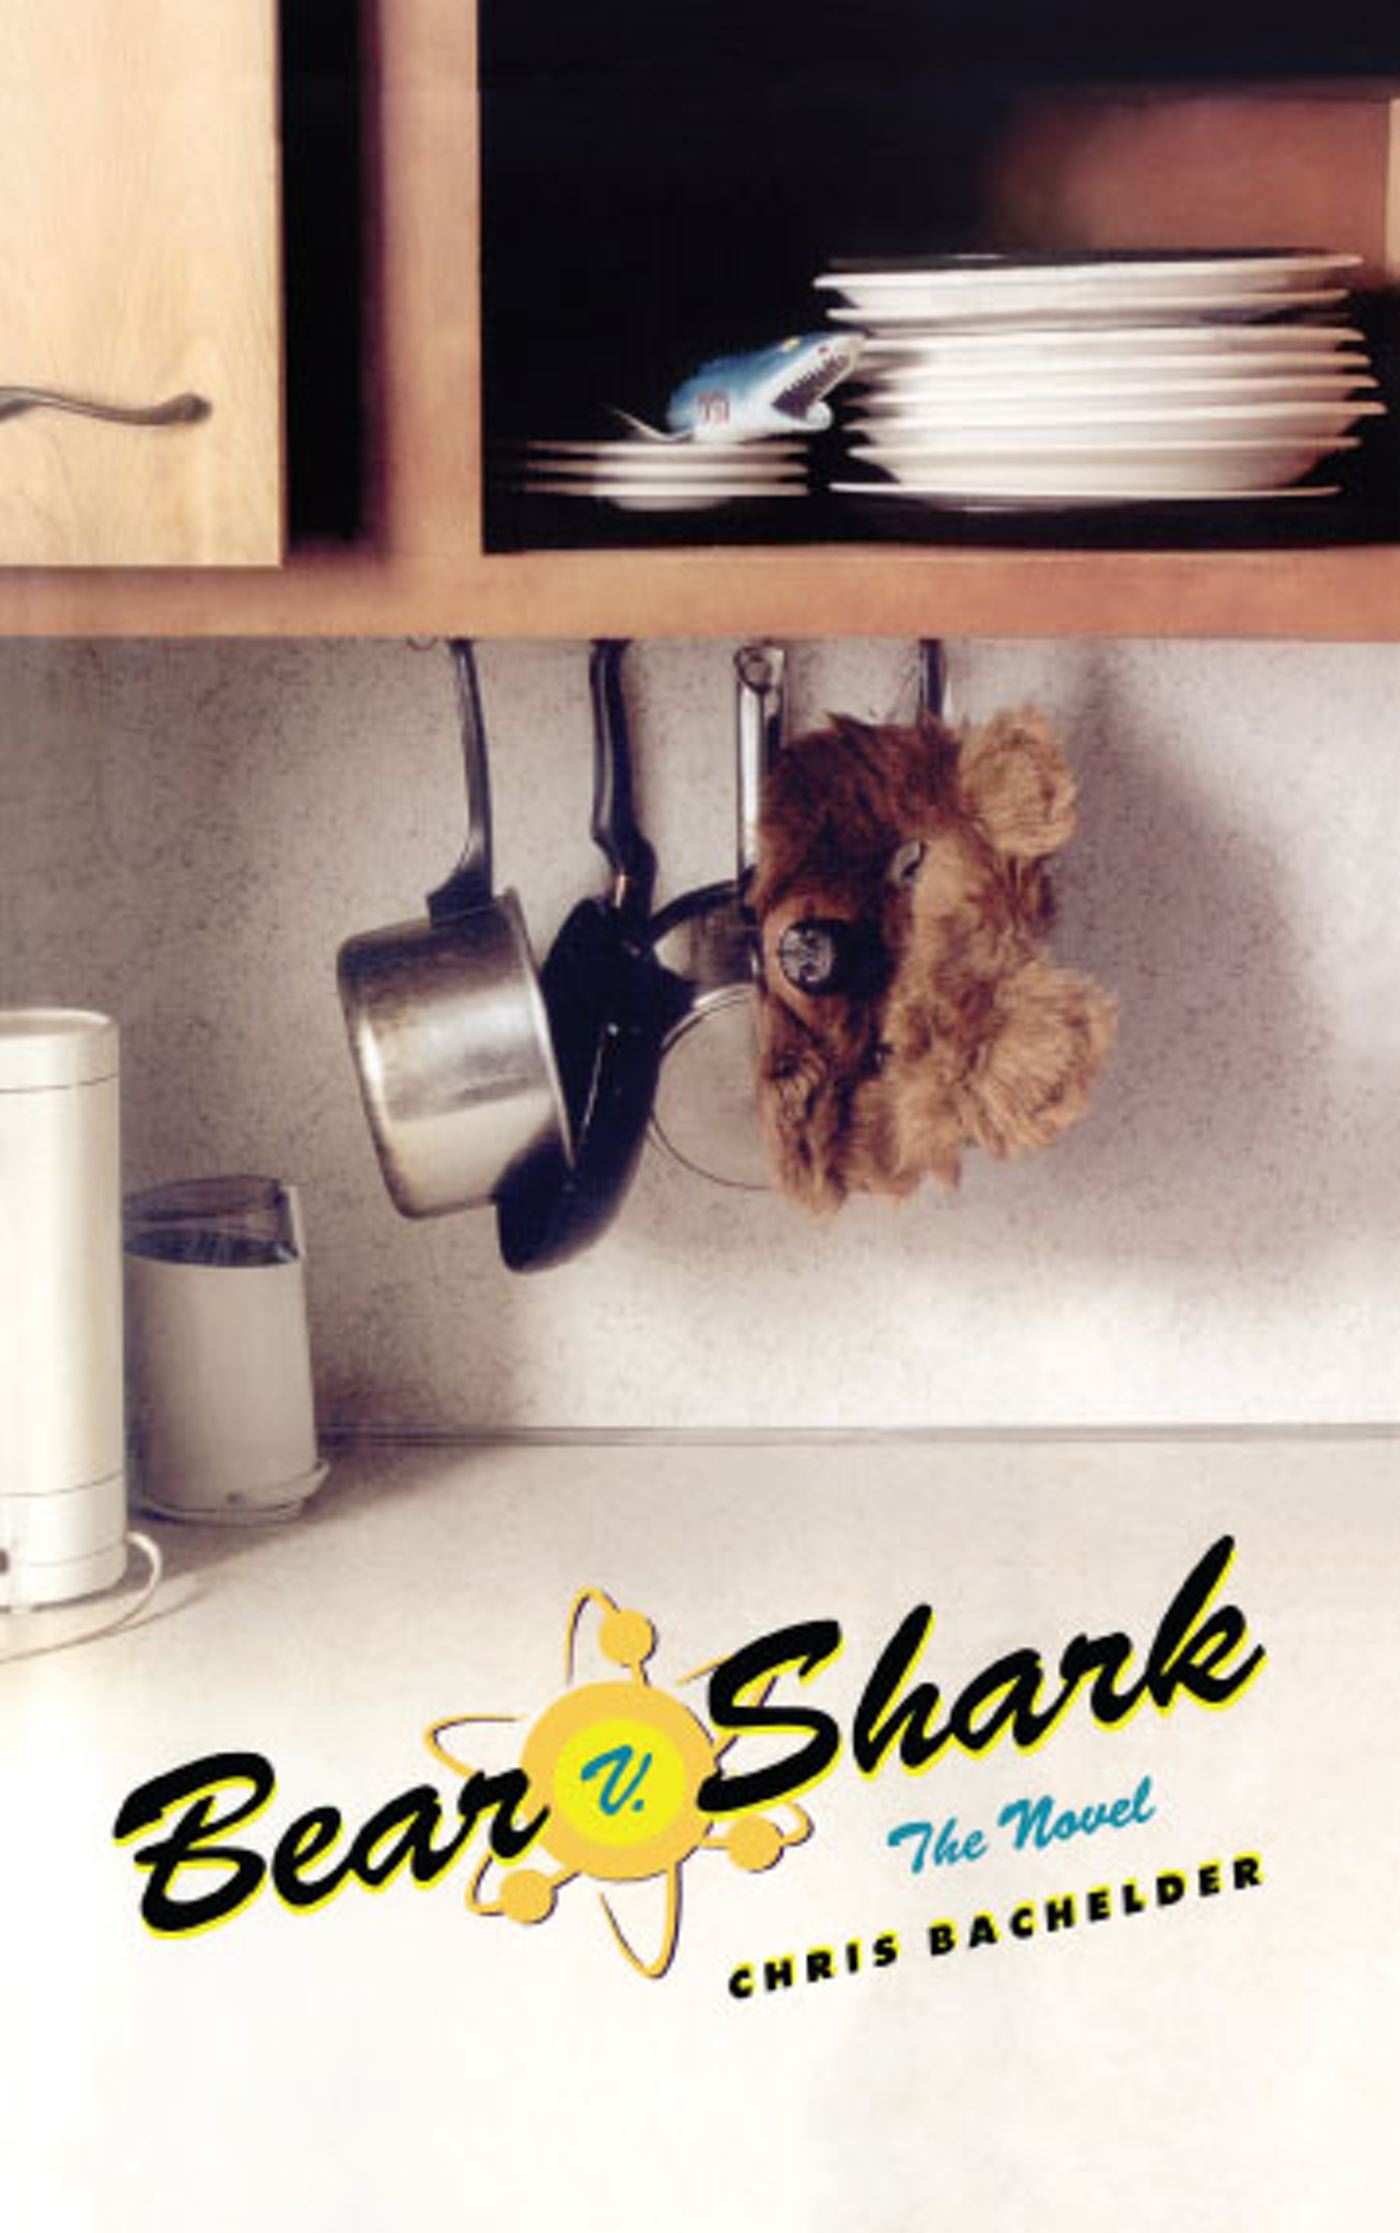 an analysis of the fight between a bear and a shark by chris bachelder Read a free sample or buy bear v shark by chris bachelder you can read this book with ibooks who would win in a fight between a bear and a shark.